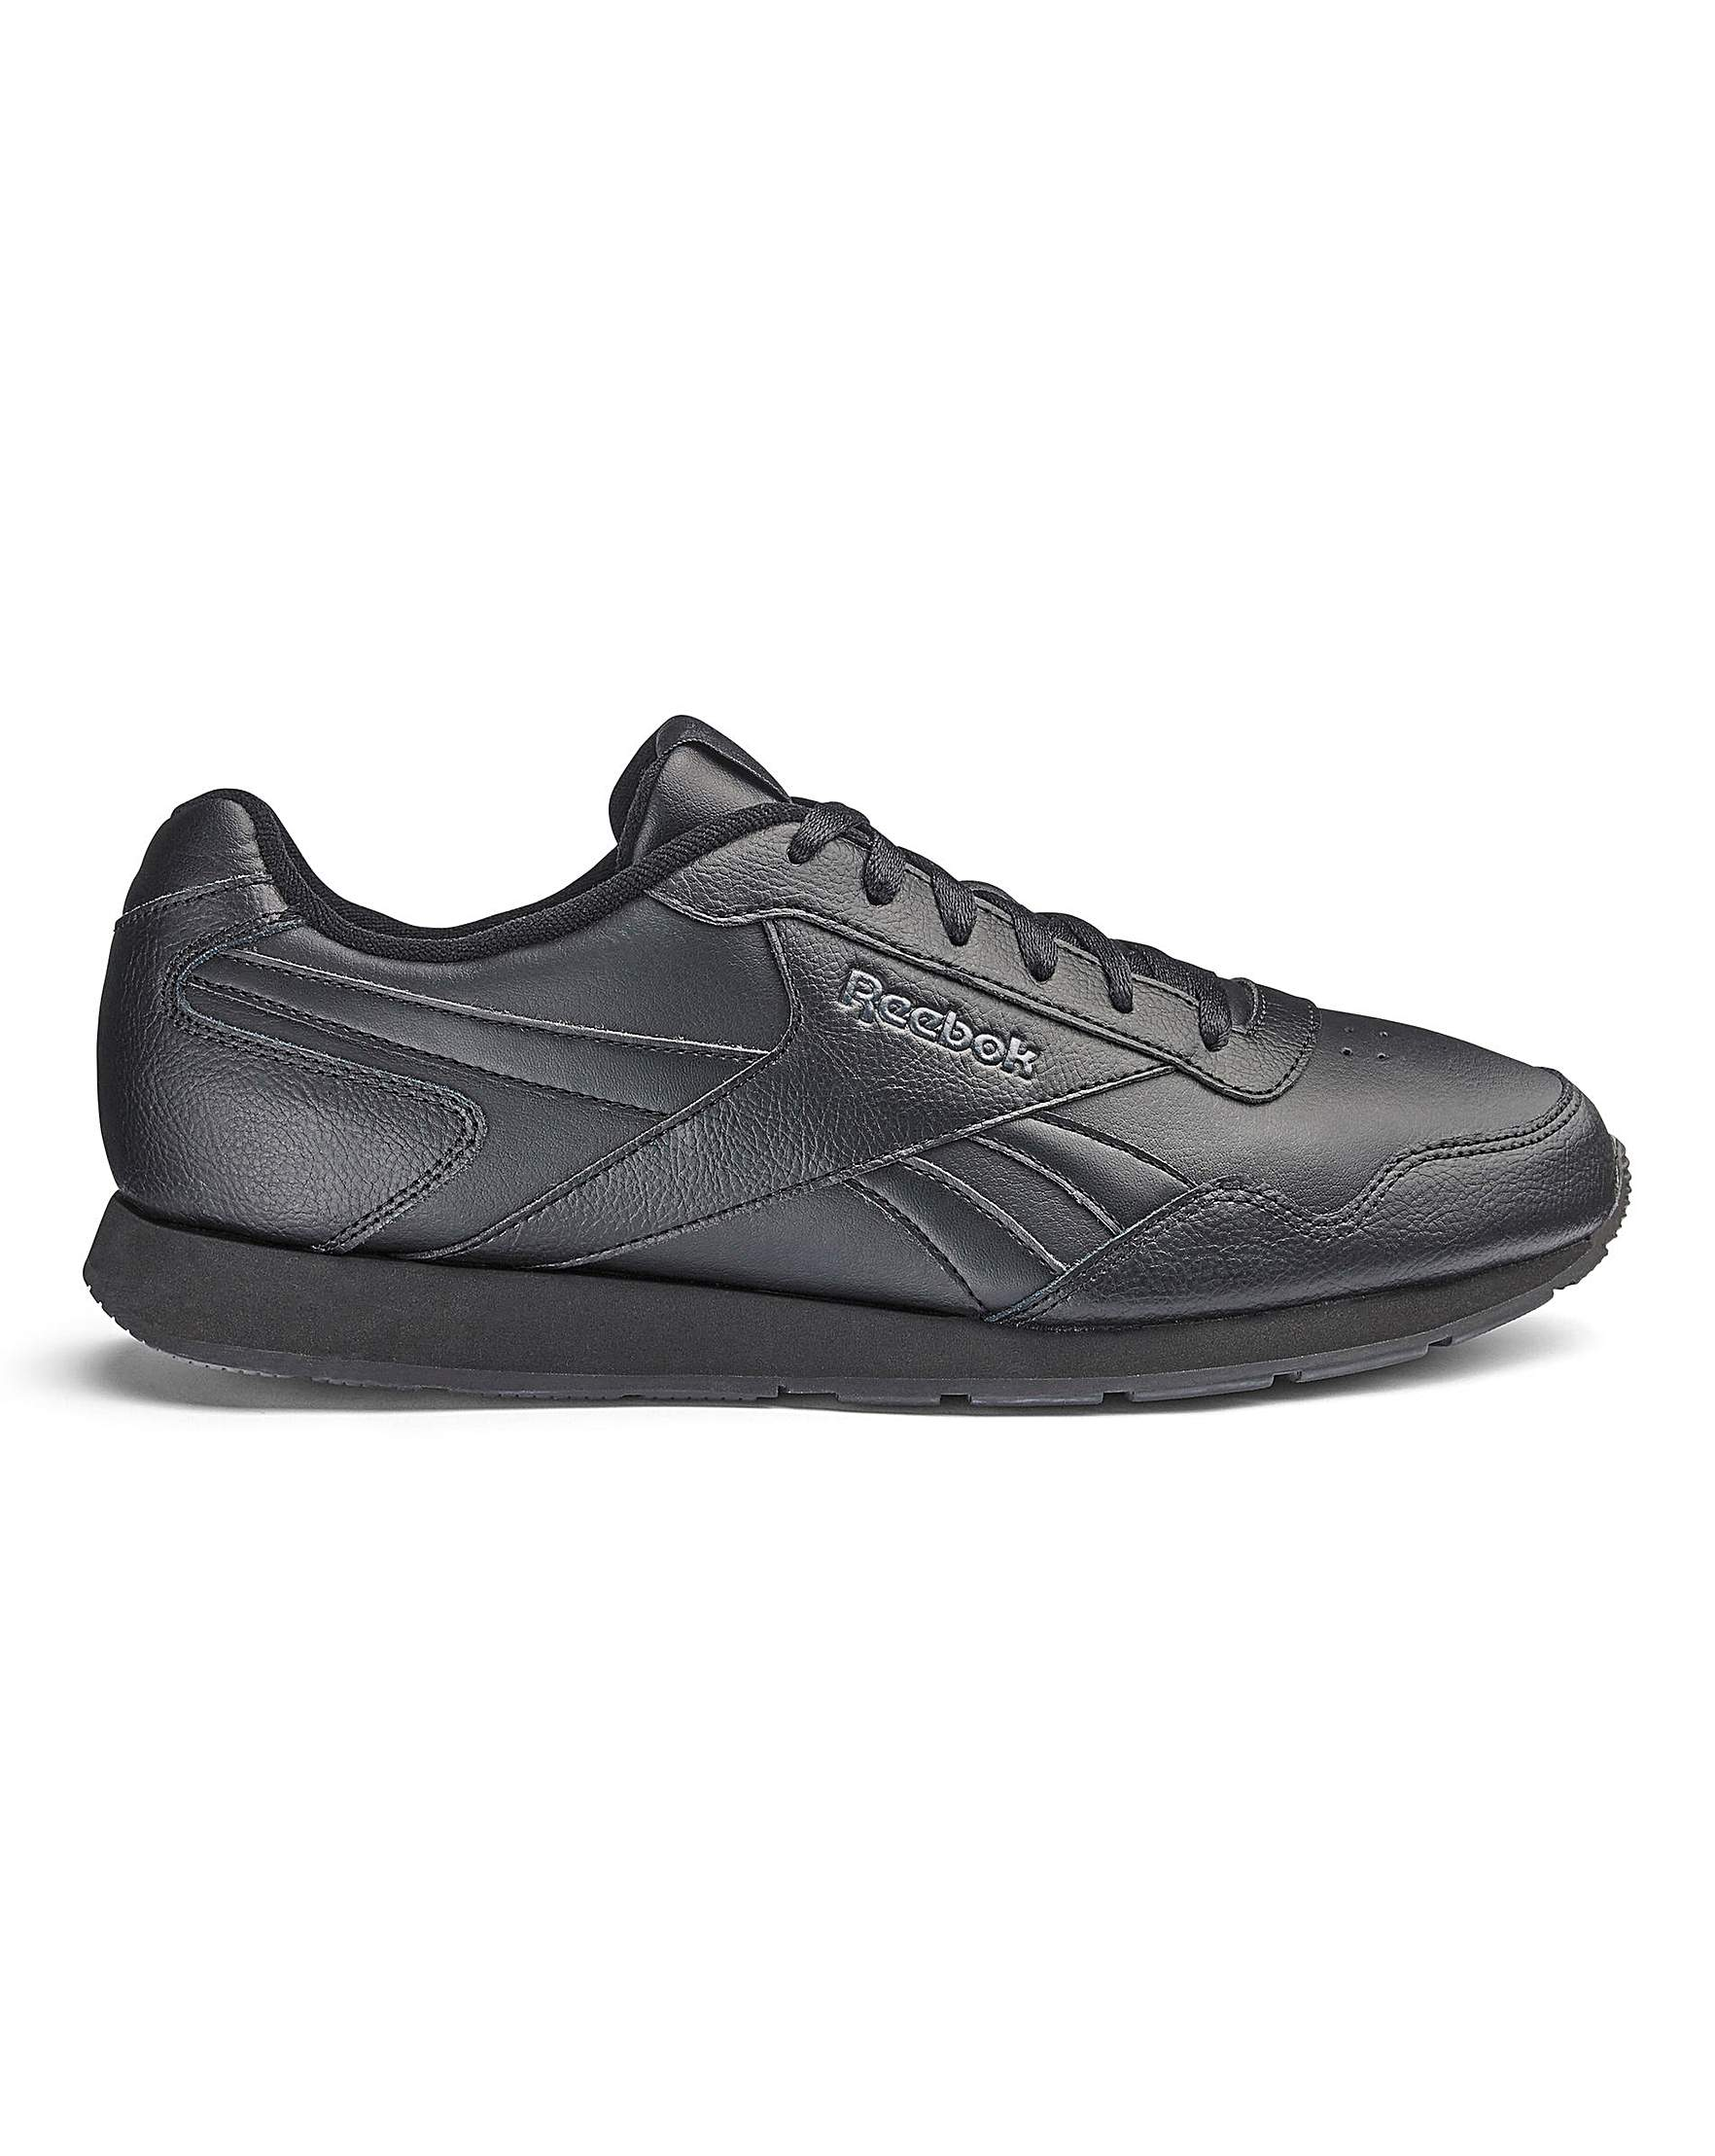 8c9981b41b3ac Reebok Royal Glide Mens Trainers